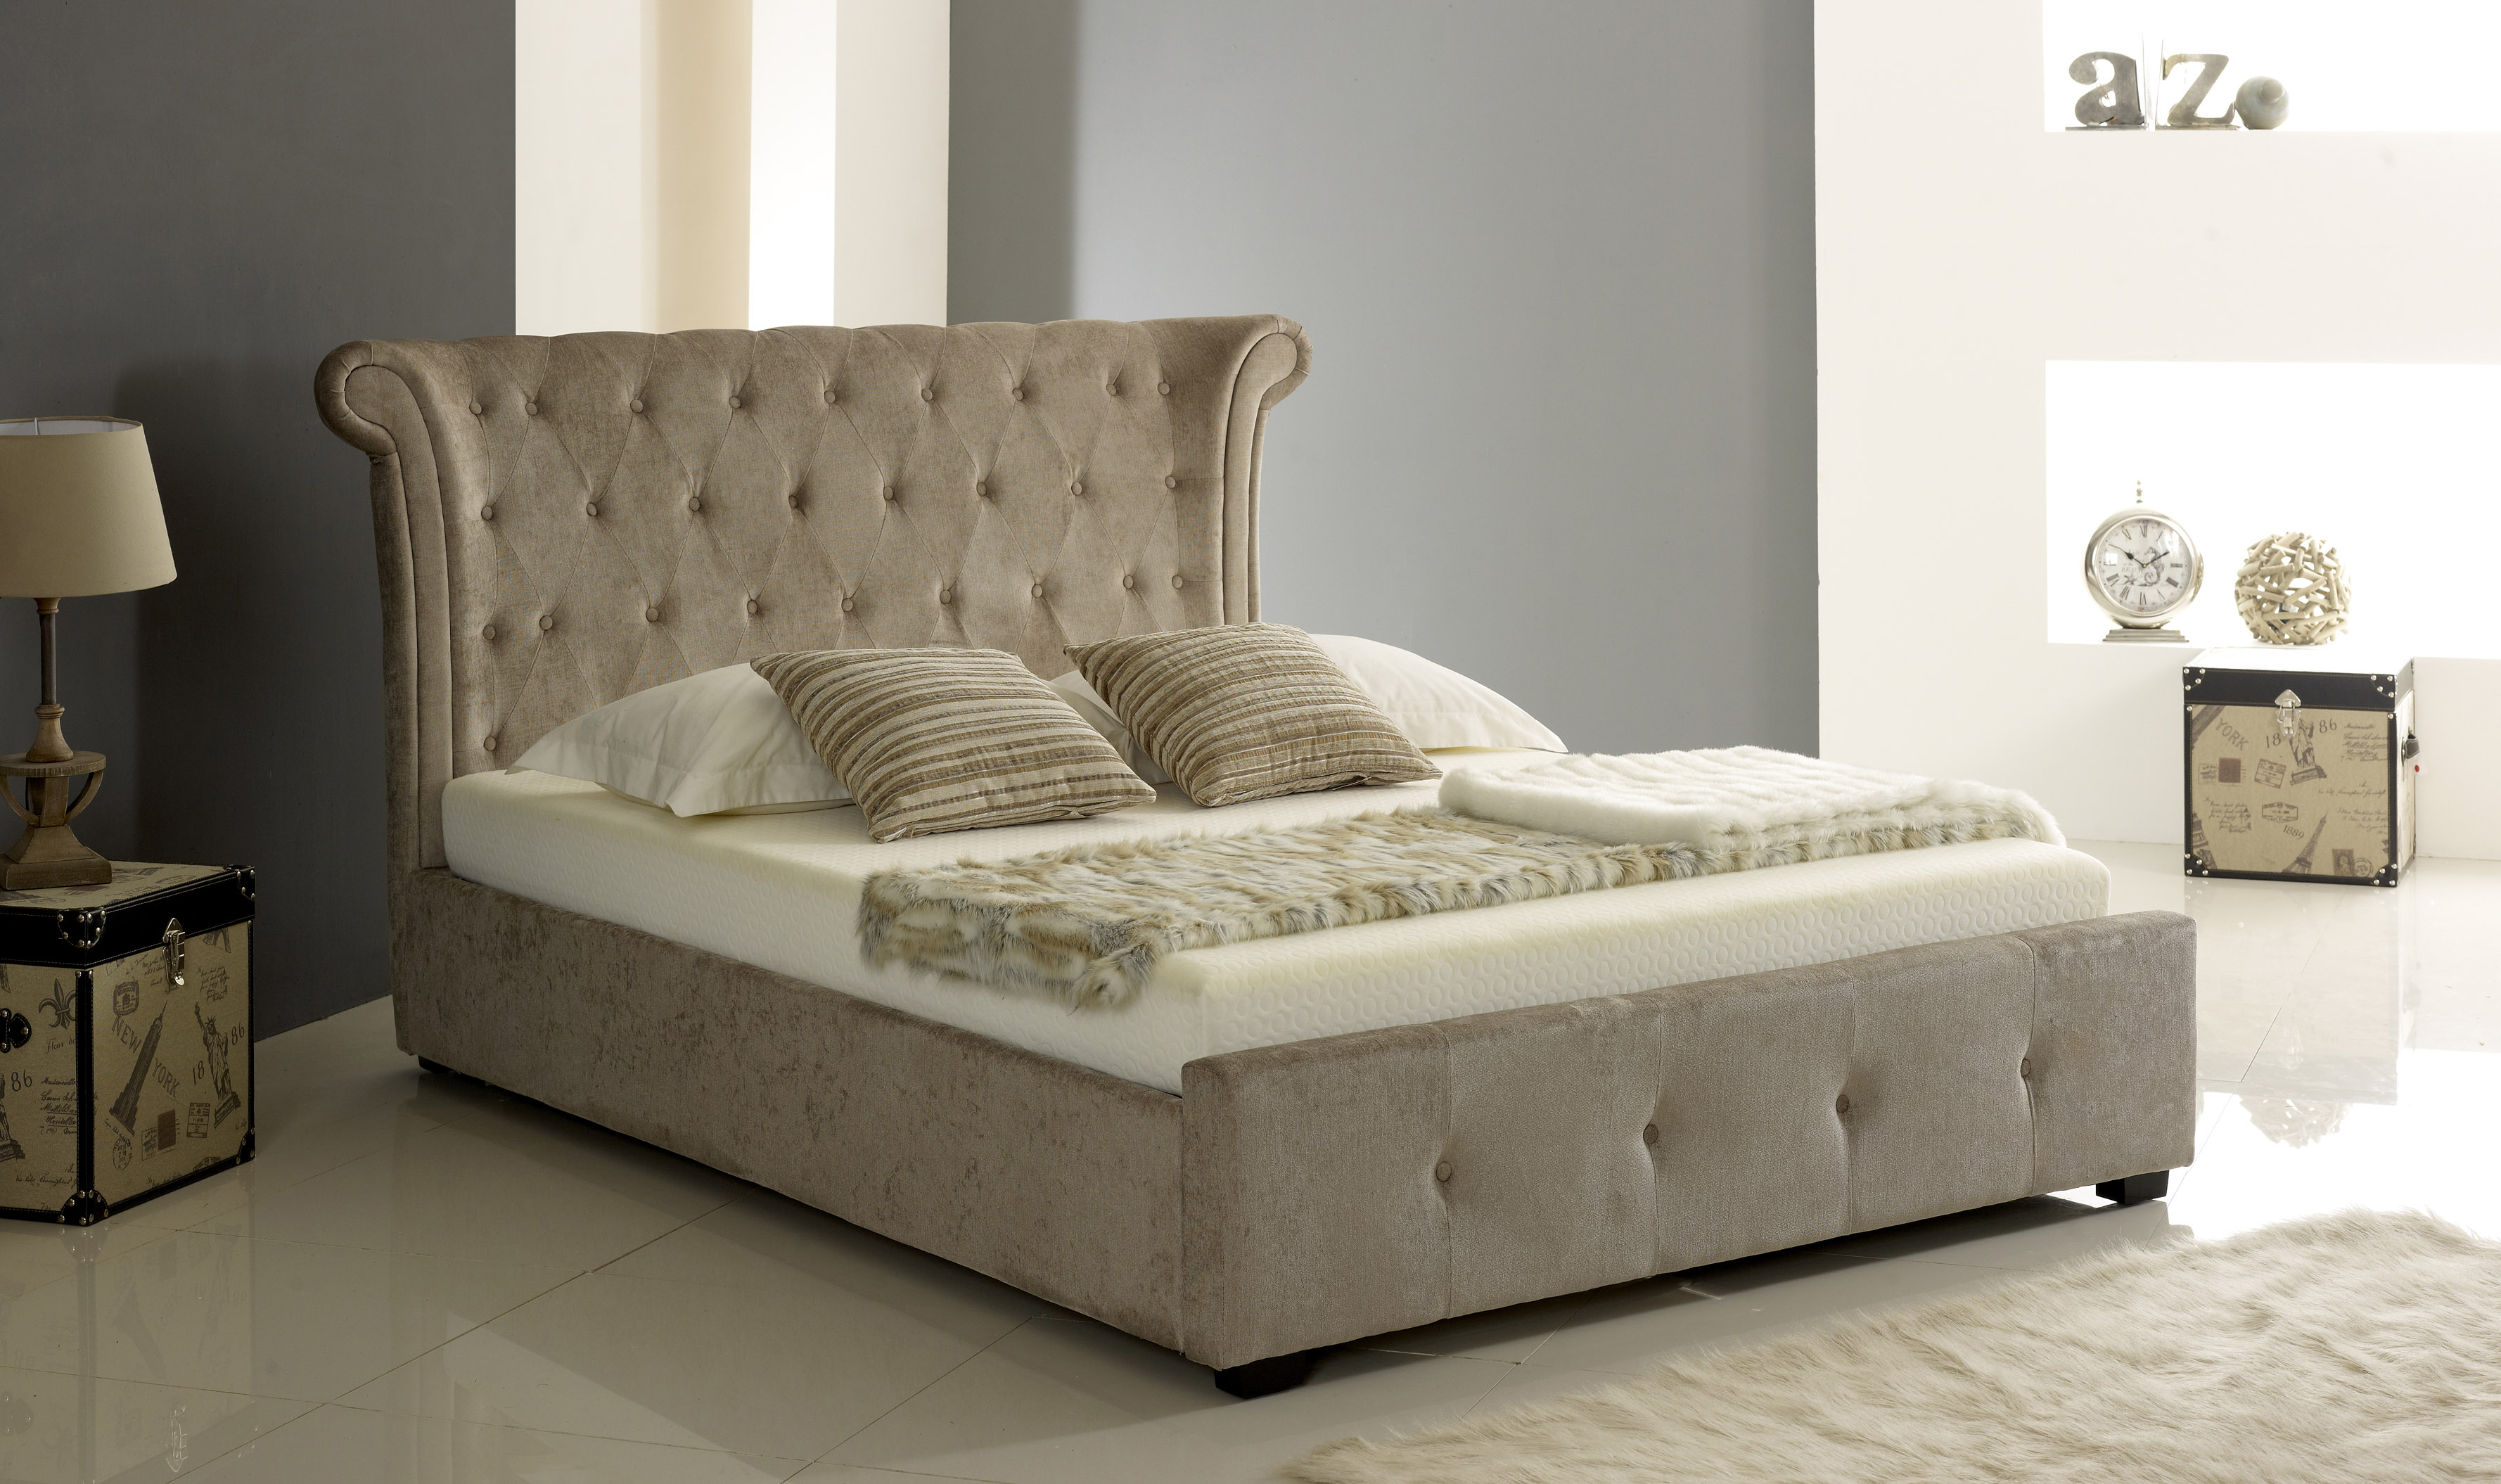 Ottoman Bedroom Furniture Ottoman Beds Product Categories Majestic Furnishings